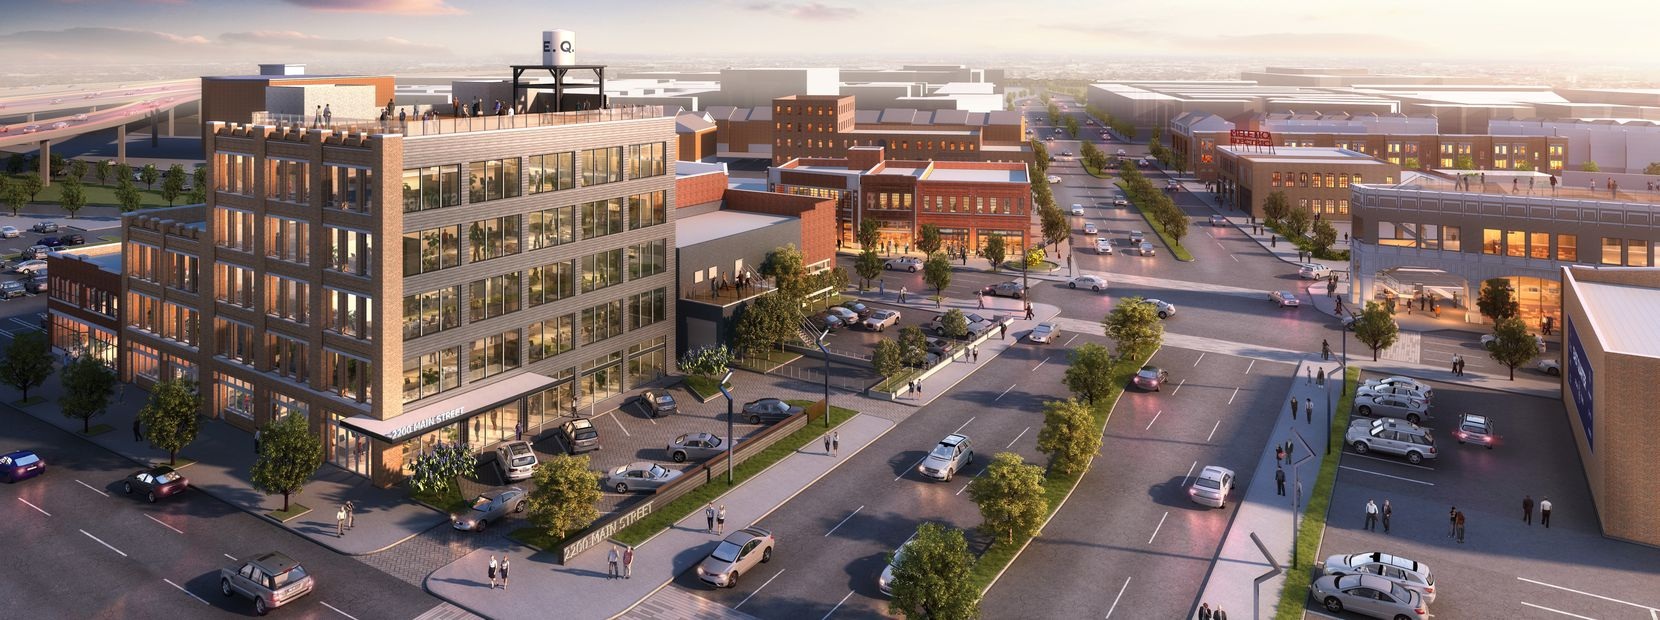 The East Quarter development on the edge of downtown is revitalizing almost a dozen old commercial buildings.